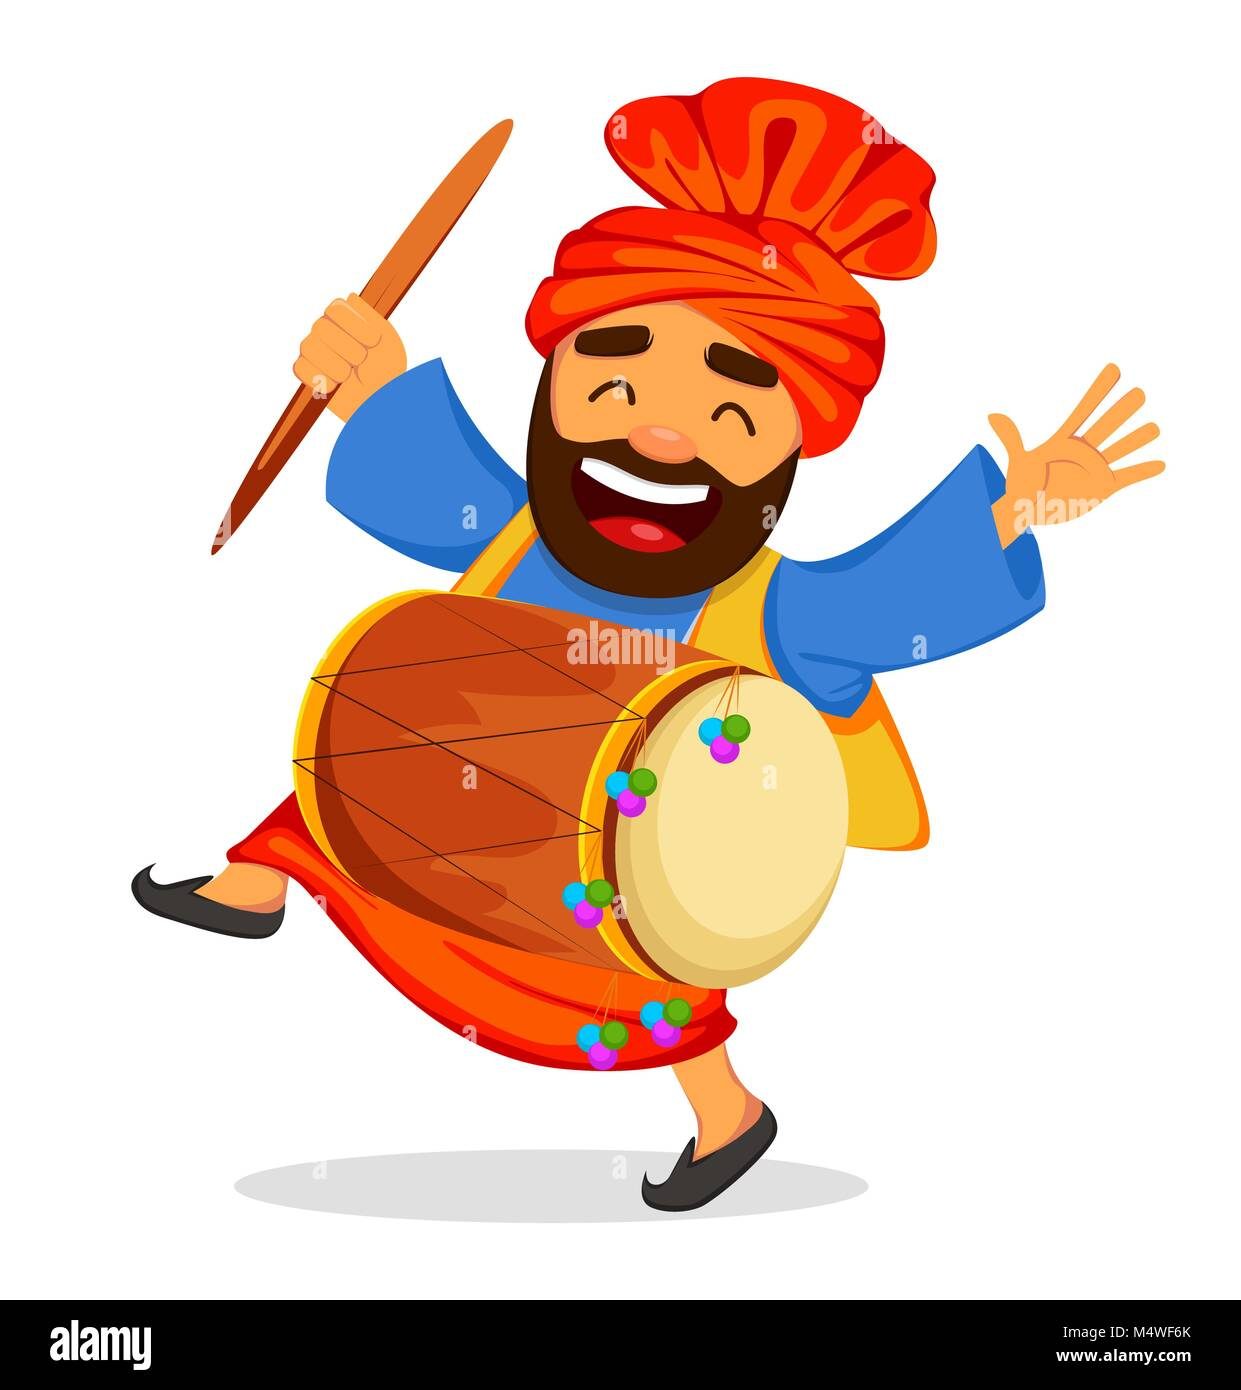 Popular winter Punjabi folk festival Lohri. Funny dancing Sikh man with drum, cartoon character. Vector illustration - Stock Vector